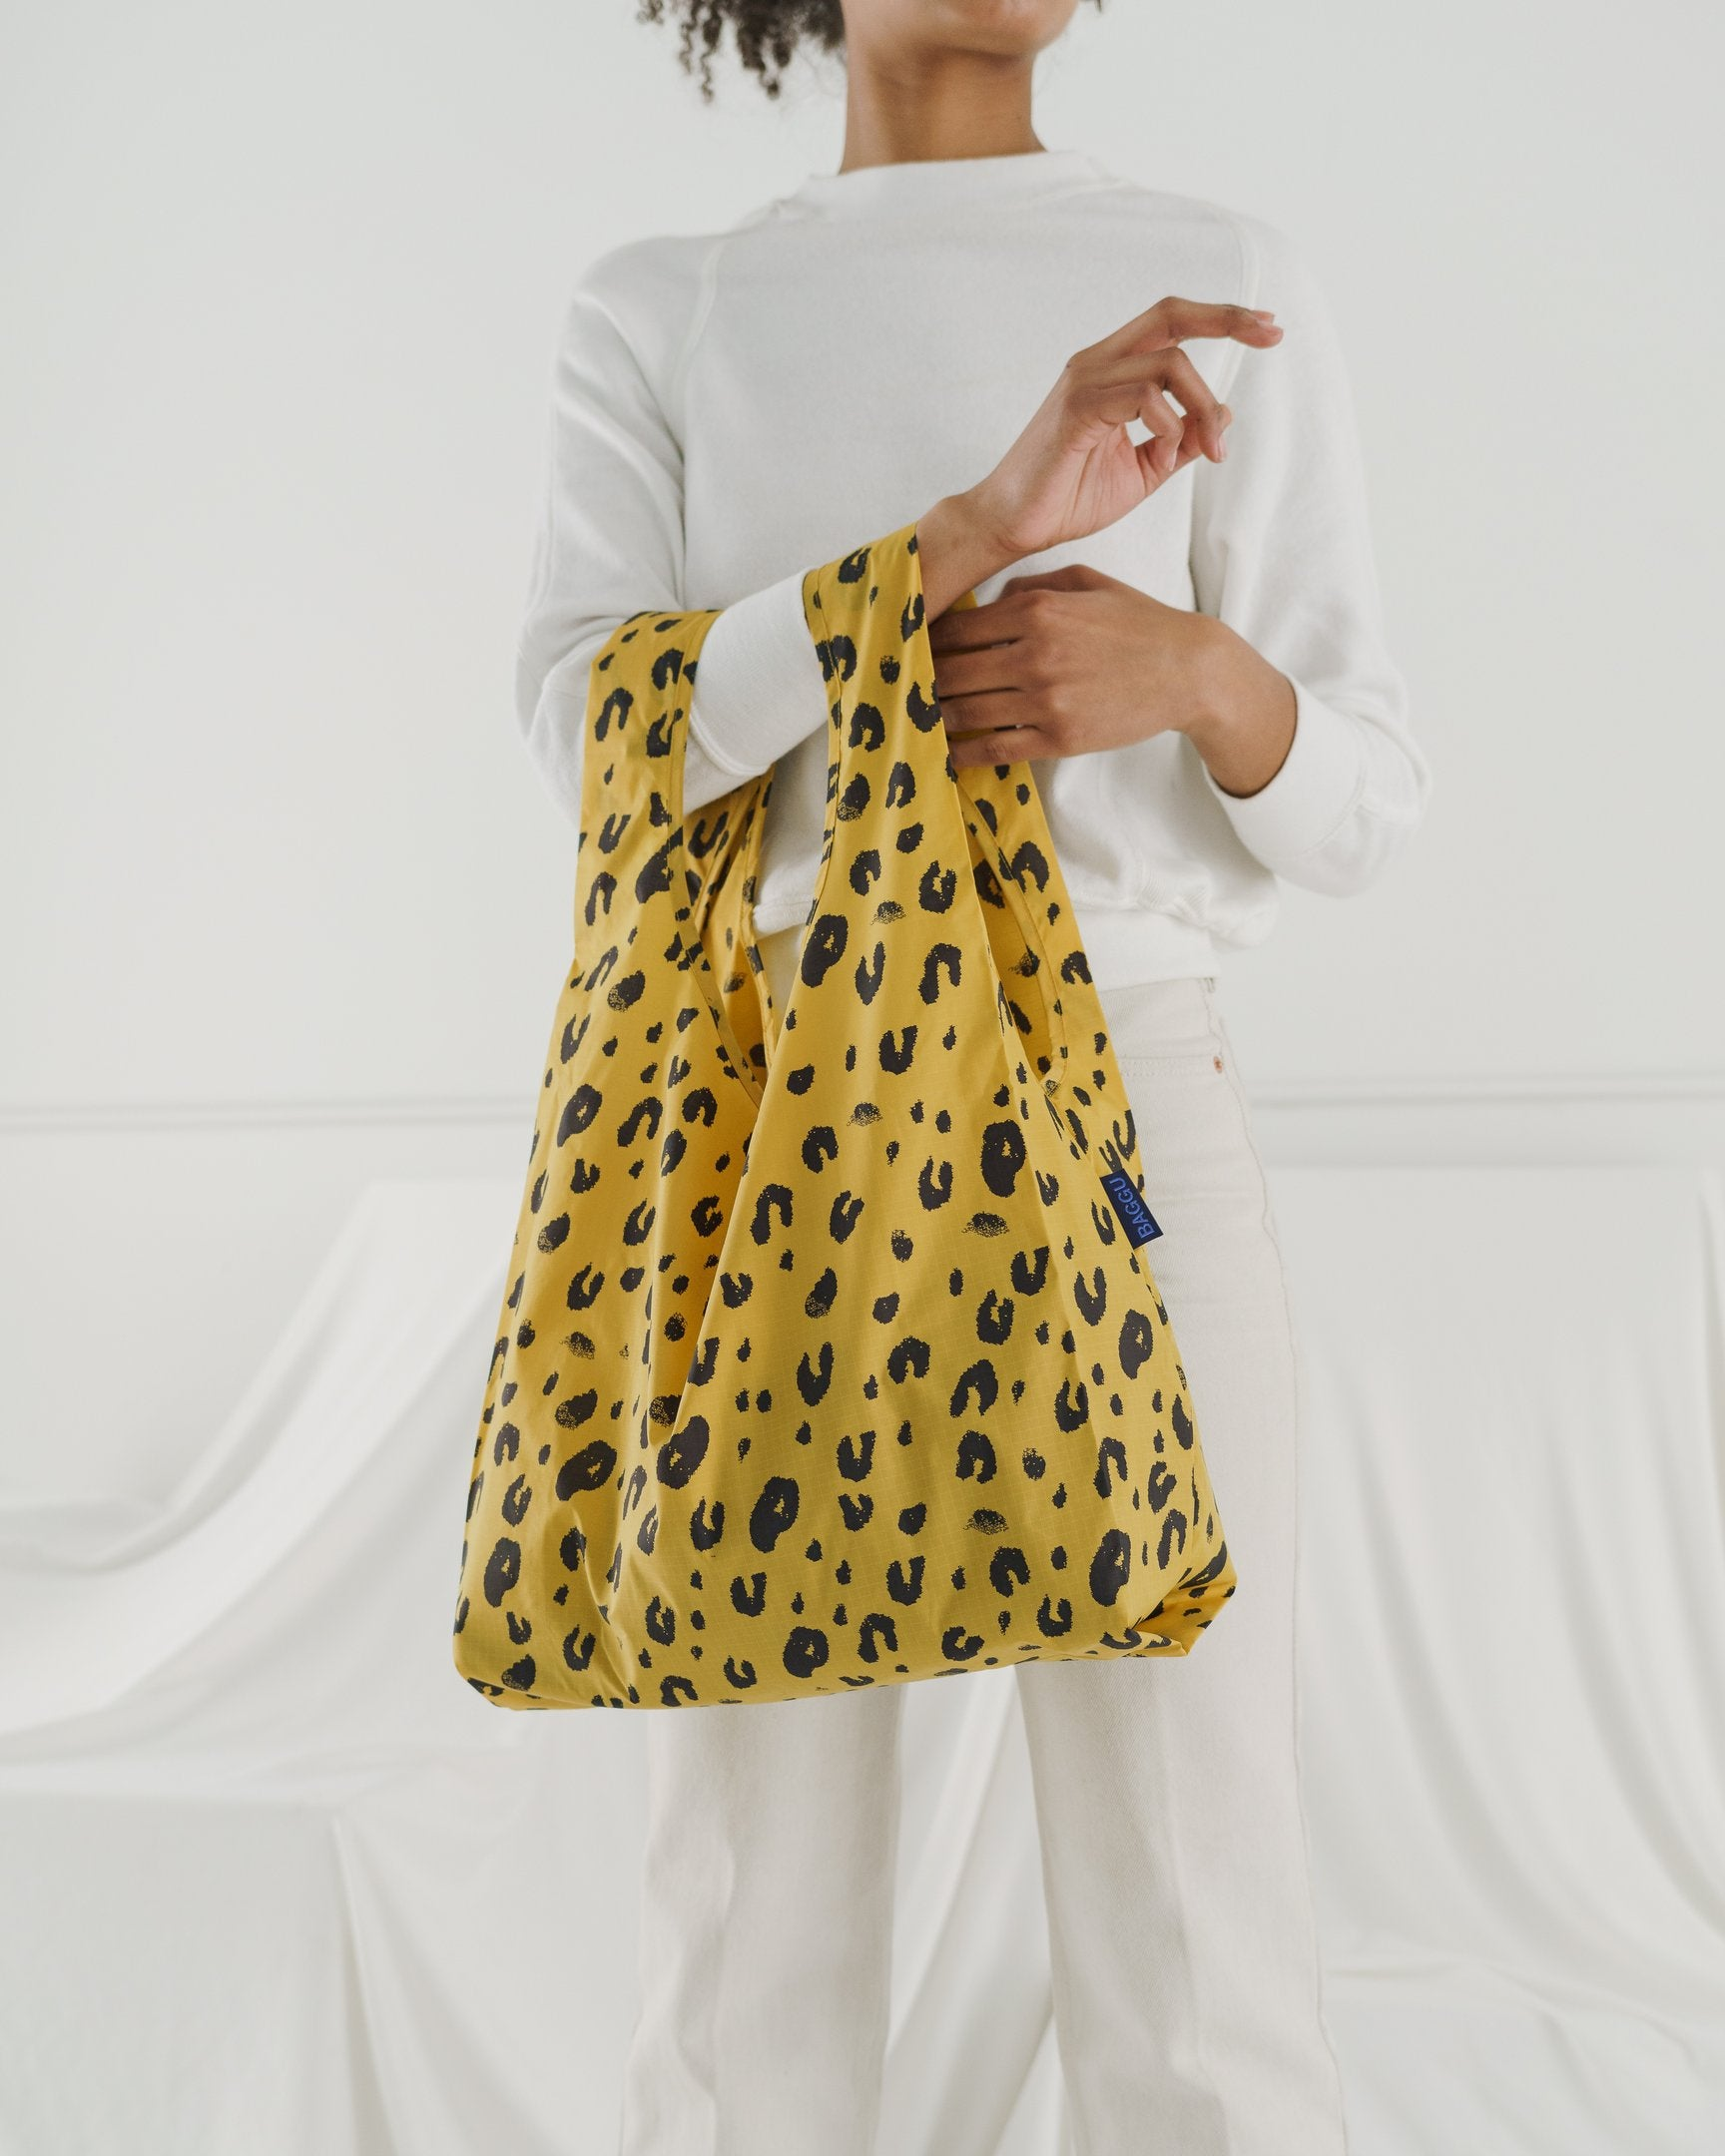 A reusable bag by Baggu that's not just for the grocery store, it goes everywhere and hauls (practically) anything. Carry in your hand or over your shoulder.